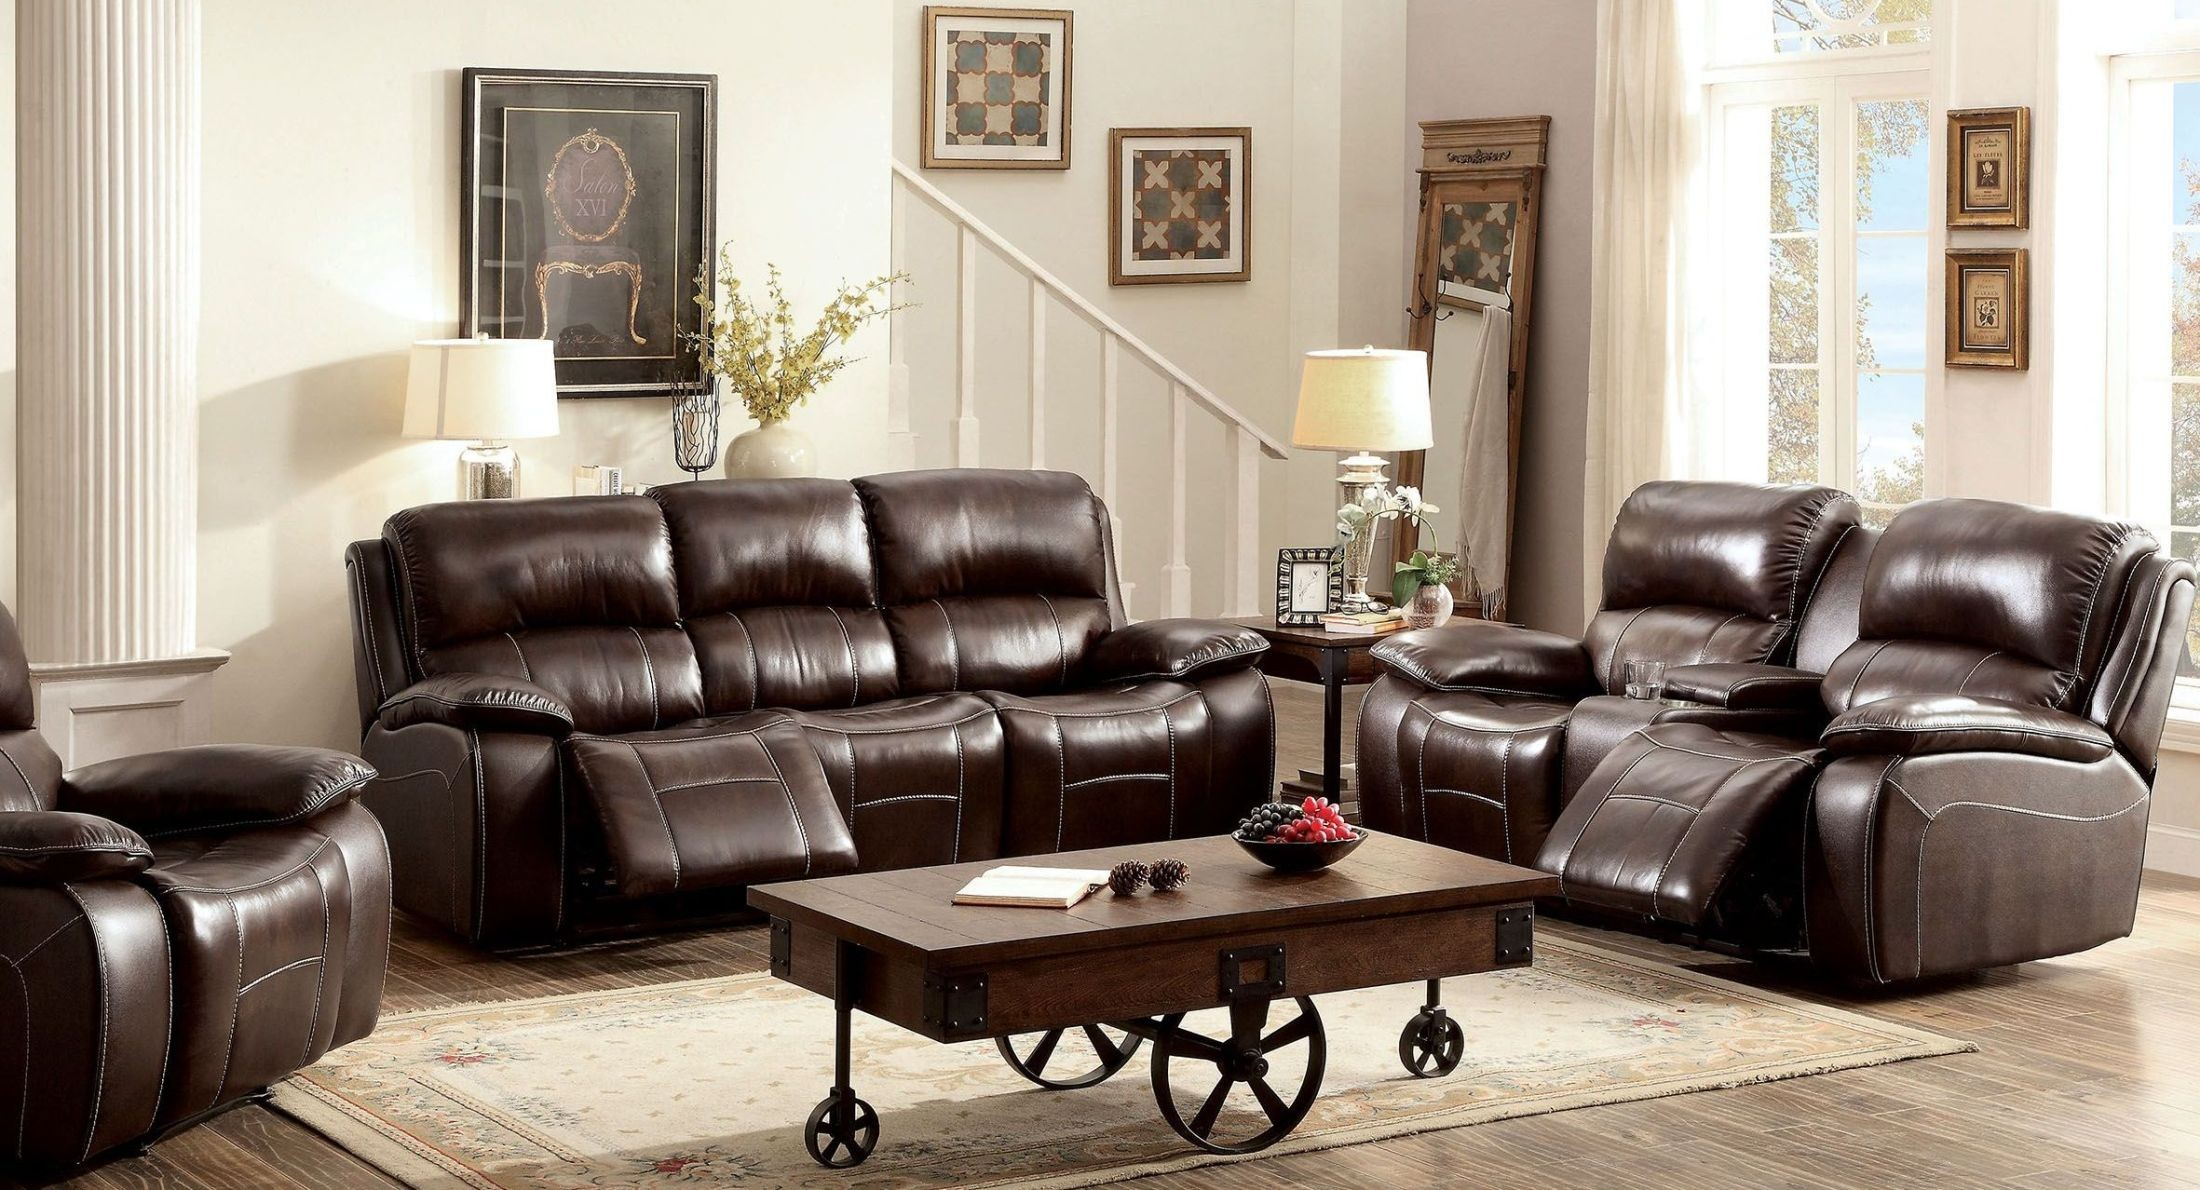 ruth brown leather reclining living room set cm6783br sf furniture of america. Black Bedroom Furniture Sets. Home Design Ideas